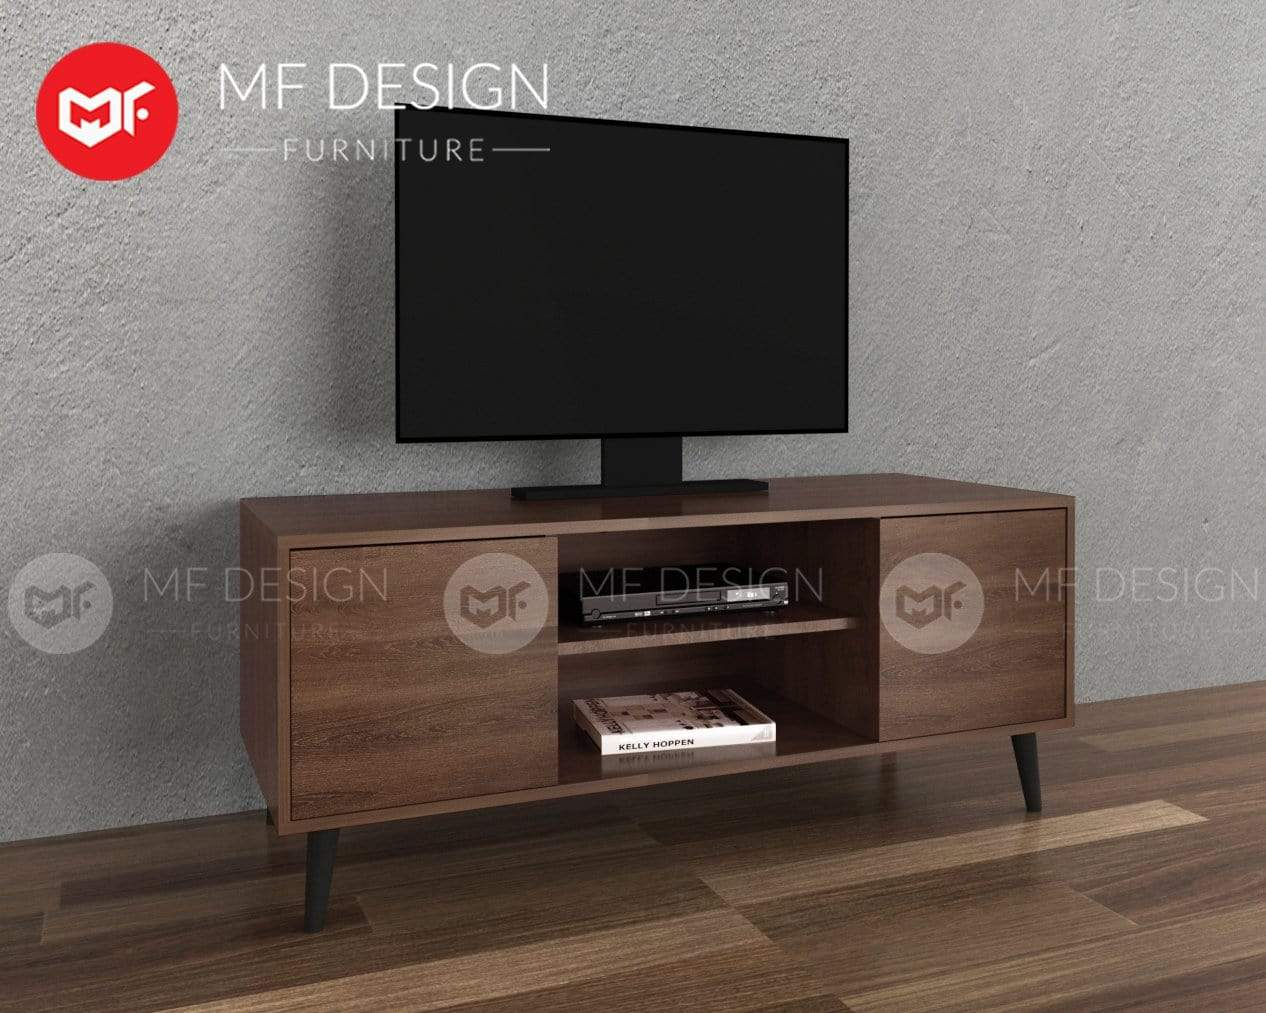 mfdesign88 TV CABINET 4FT MF DESIGN ROBIN TV CABINET RACK 4FT